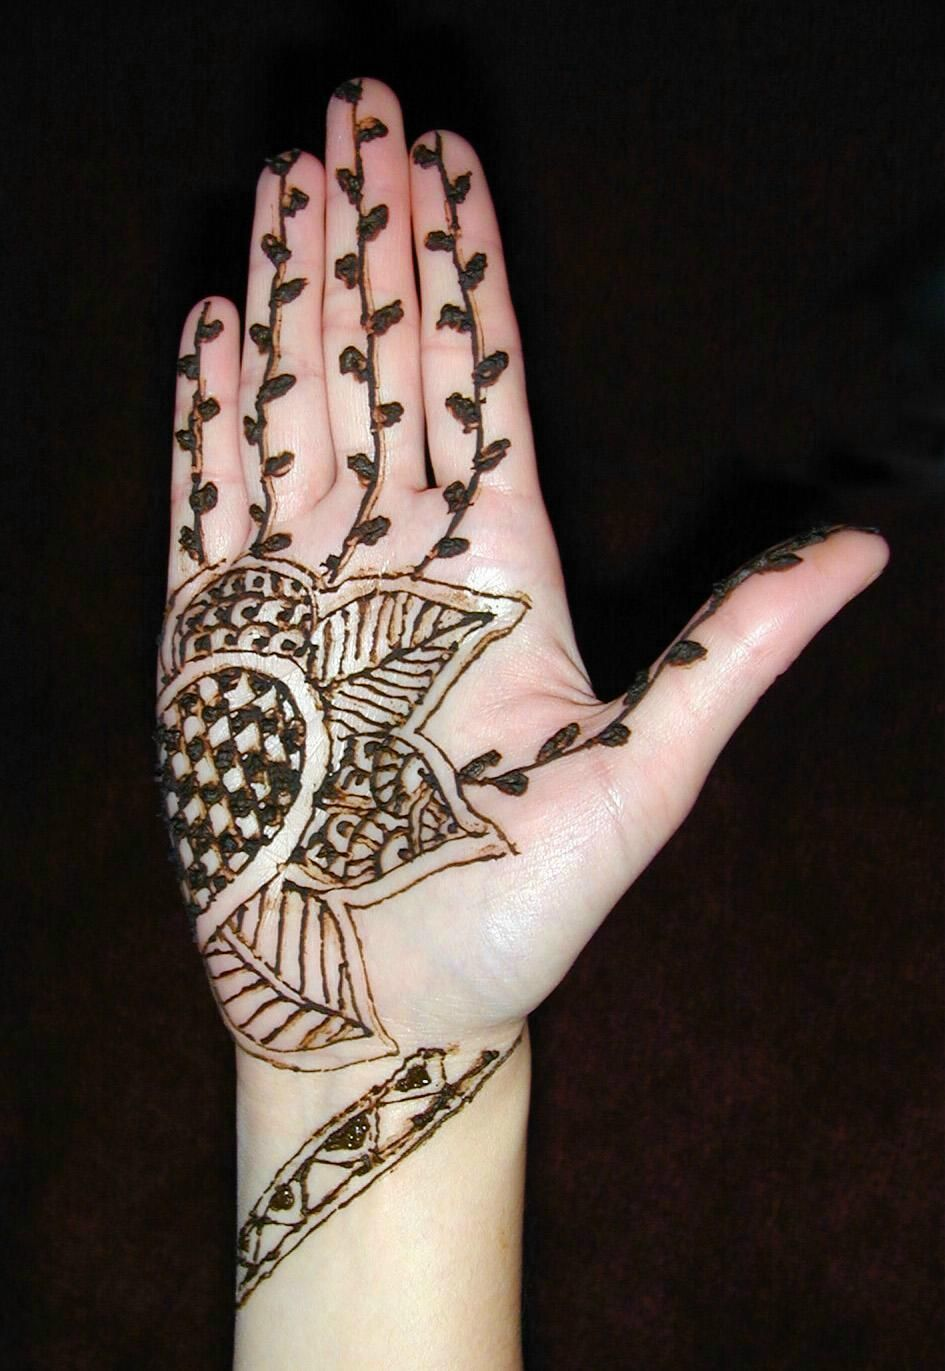 Mughlai Mehndi Designs – Our Top 40 Mughlai Henna Arts Mughlai Mehndi Designs – Our Top 40 Mughlai Henna Arts new images